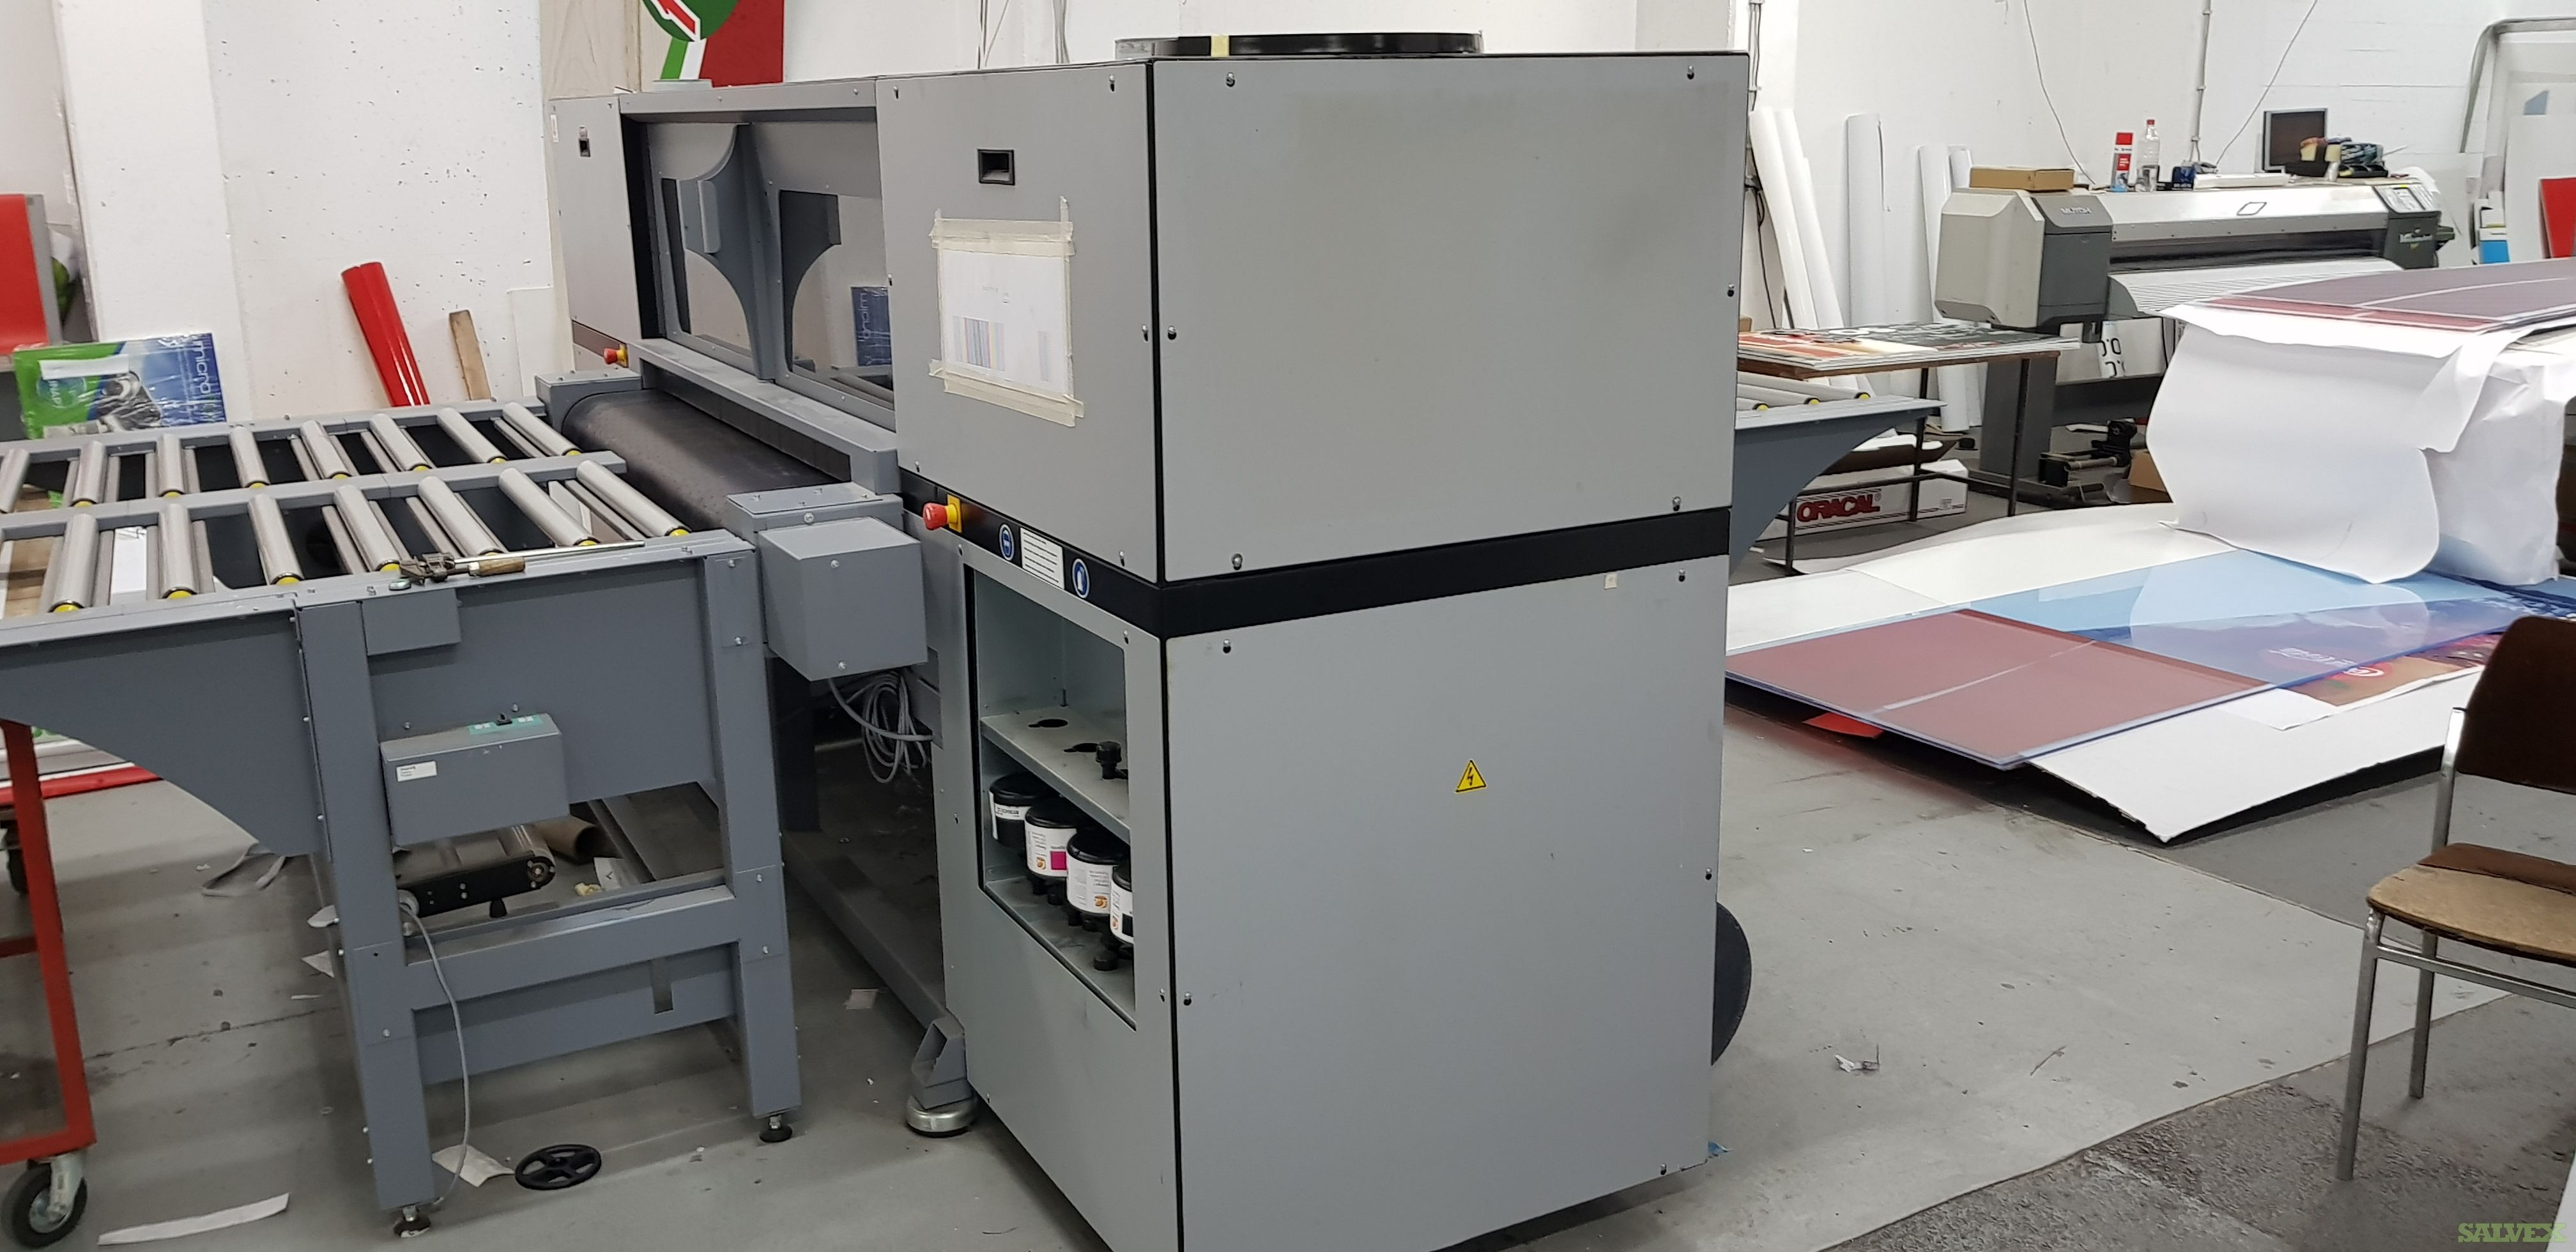 Durst Omega I Large Format Printers and Banner Welding Machine 2013 (3 Units)